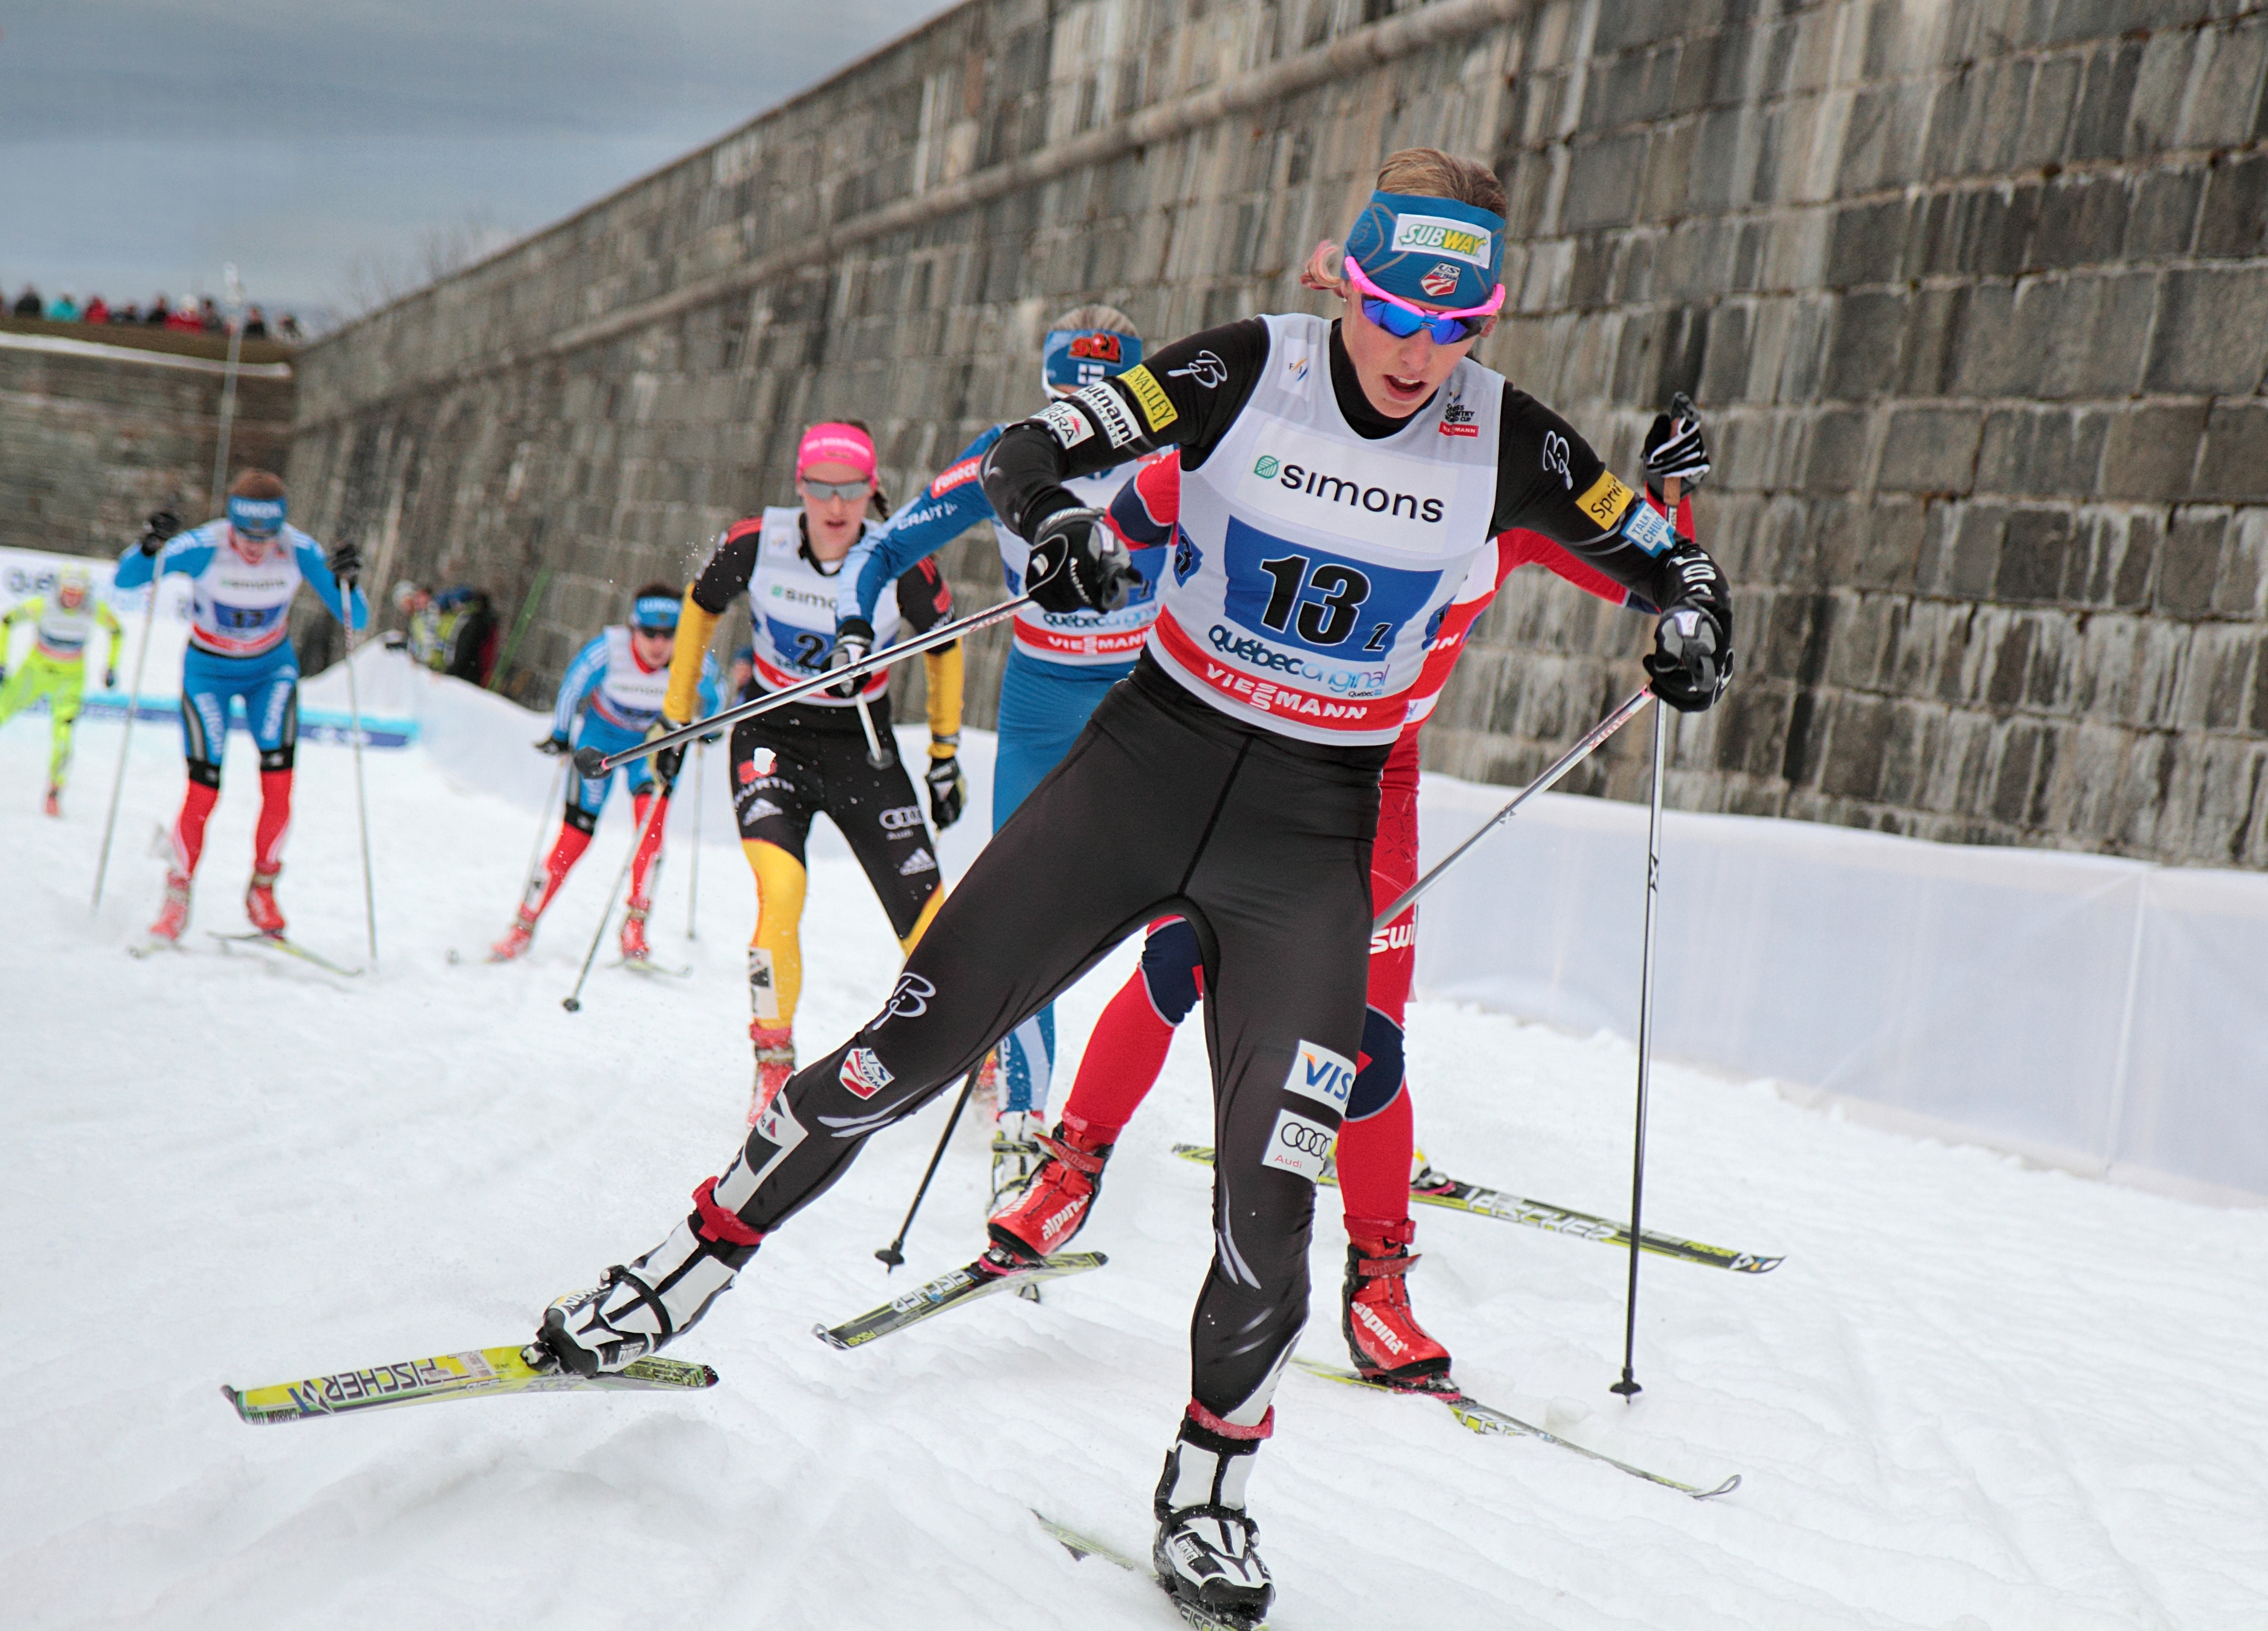 Quebec Takes Over Hosting Duties for Cross-Country World